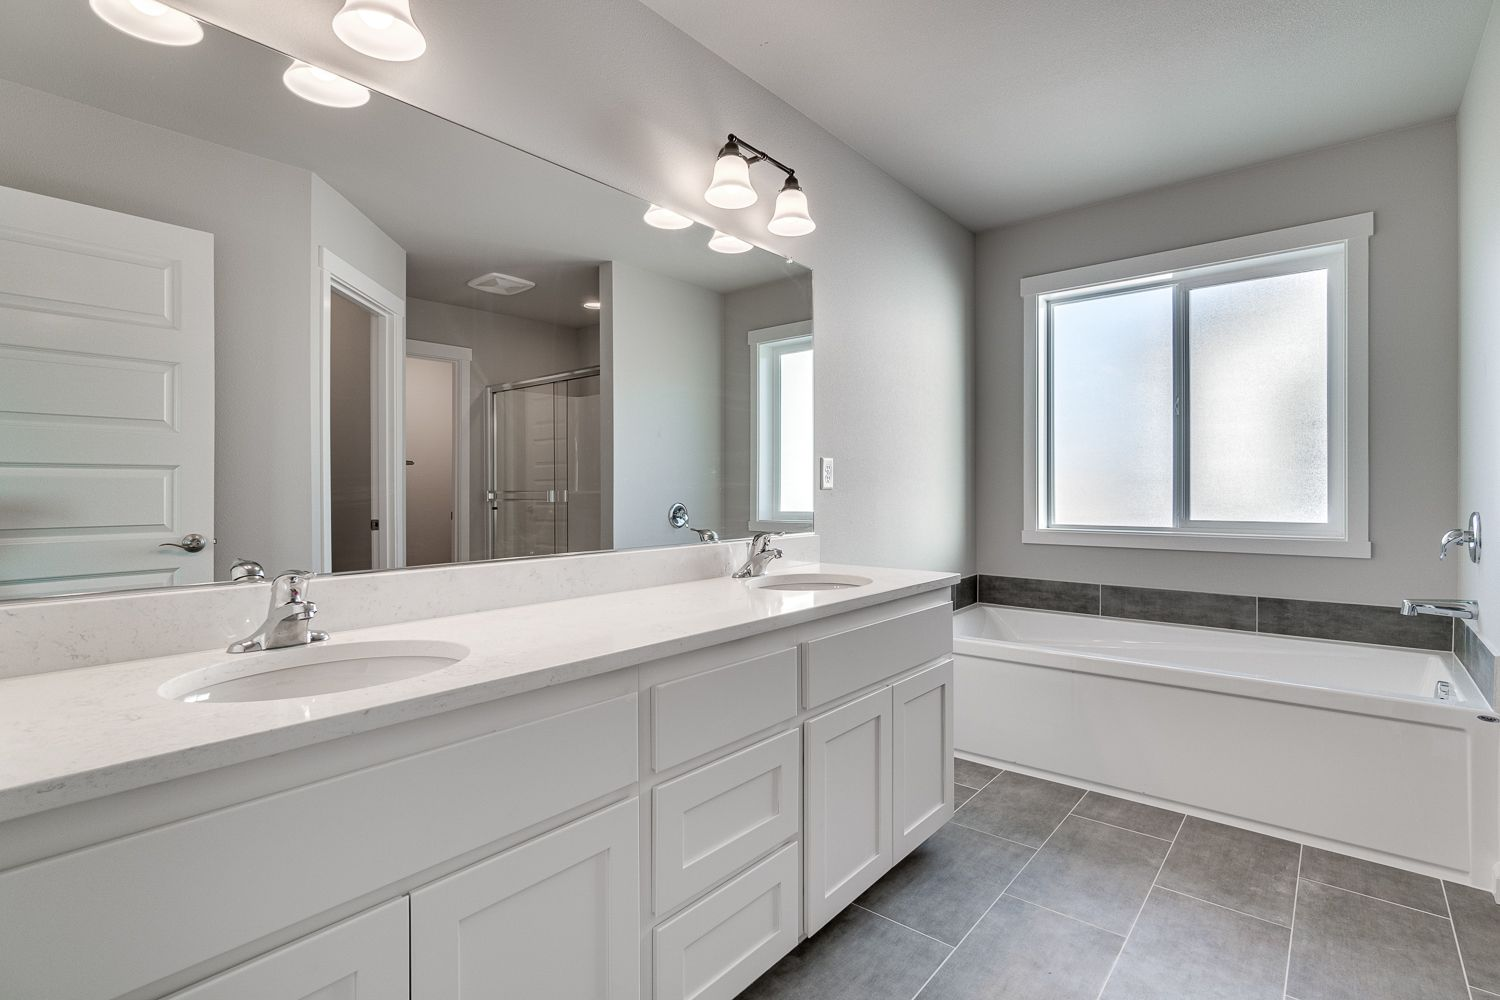 Bathroom featured in the 2952 By Aho Construction I, Inc. in Yakima, WA